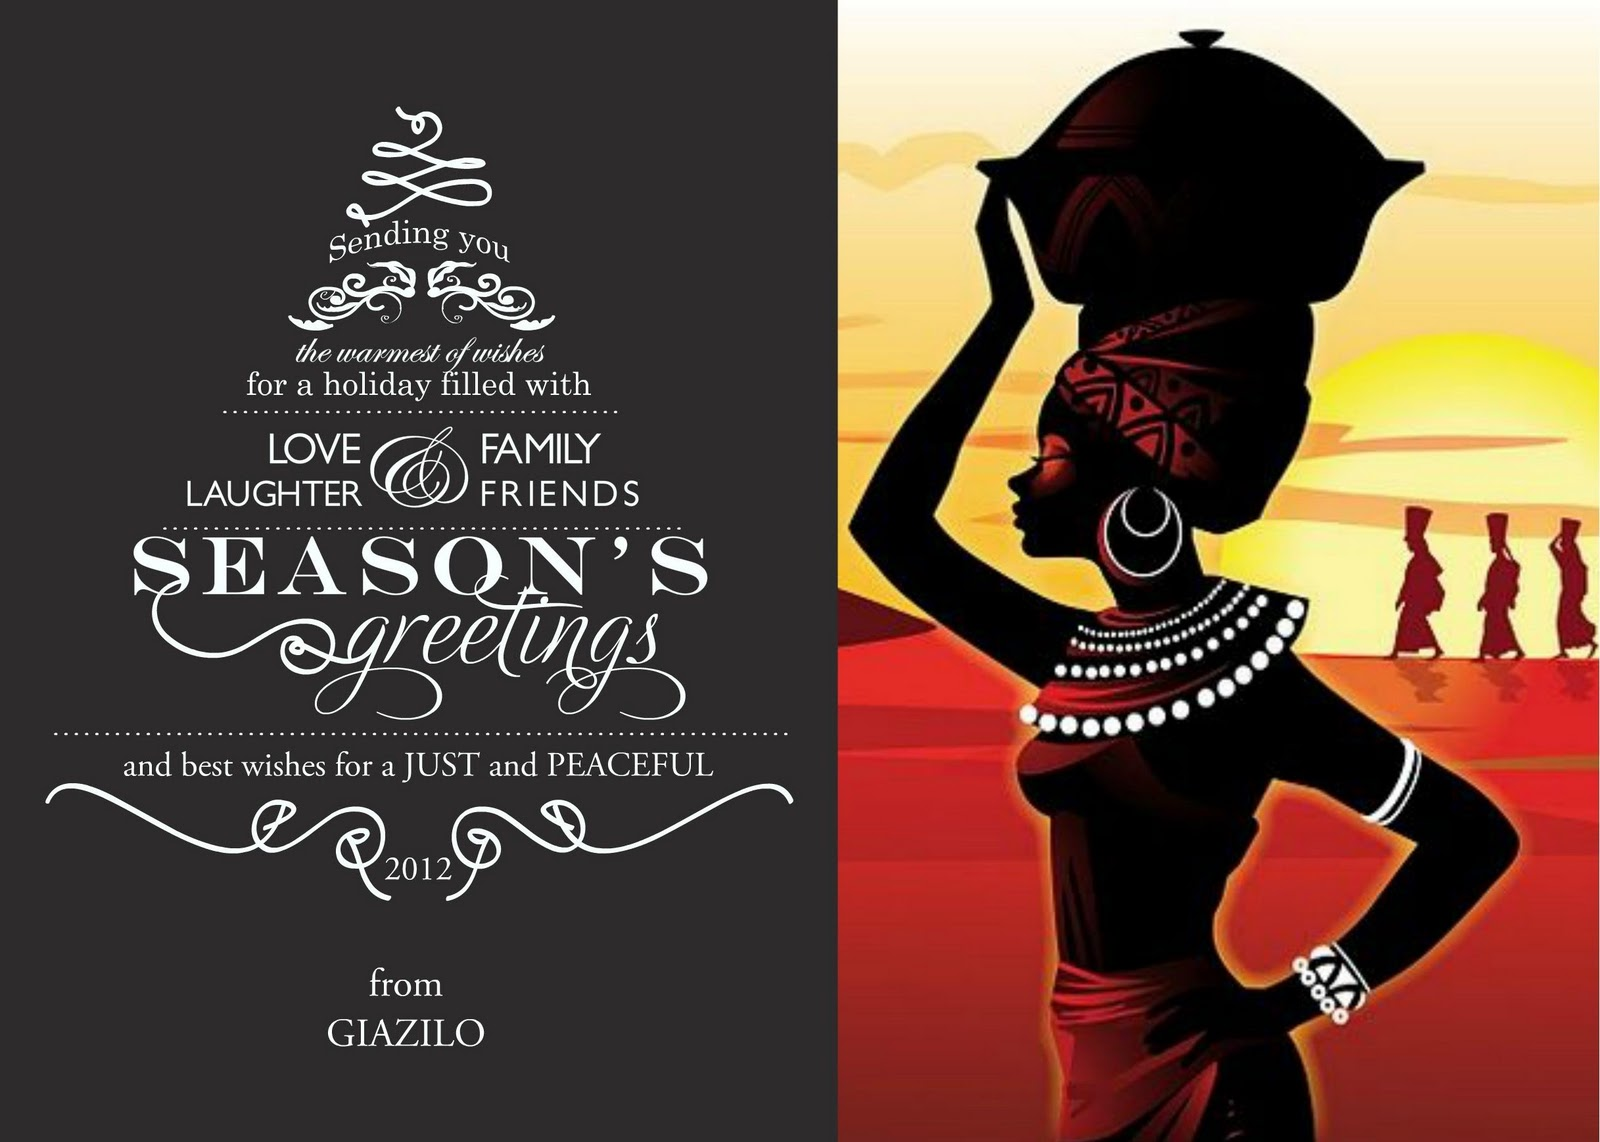 Seasons Greetings And Best Wishes For Just And Peaceful 2012 Giazilo